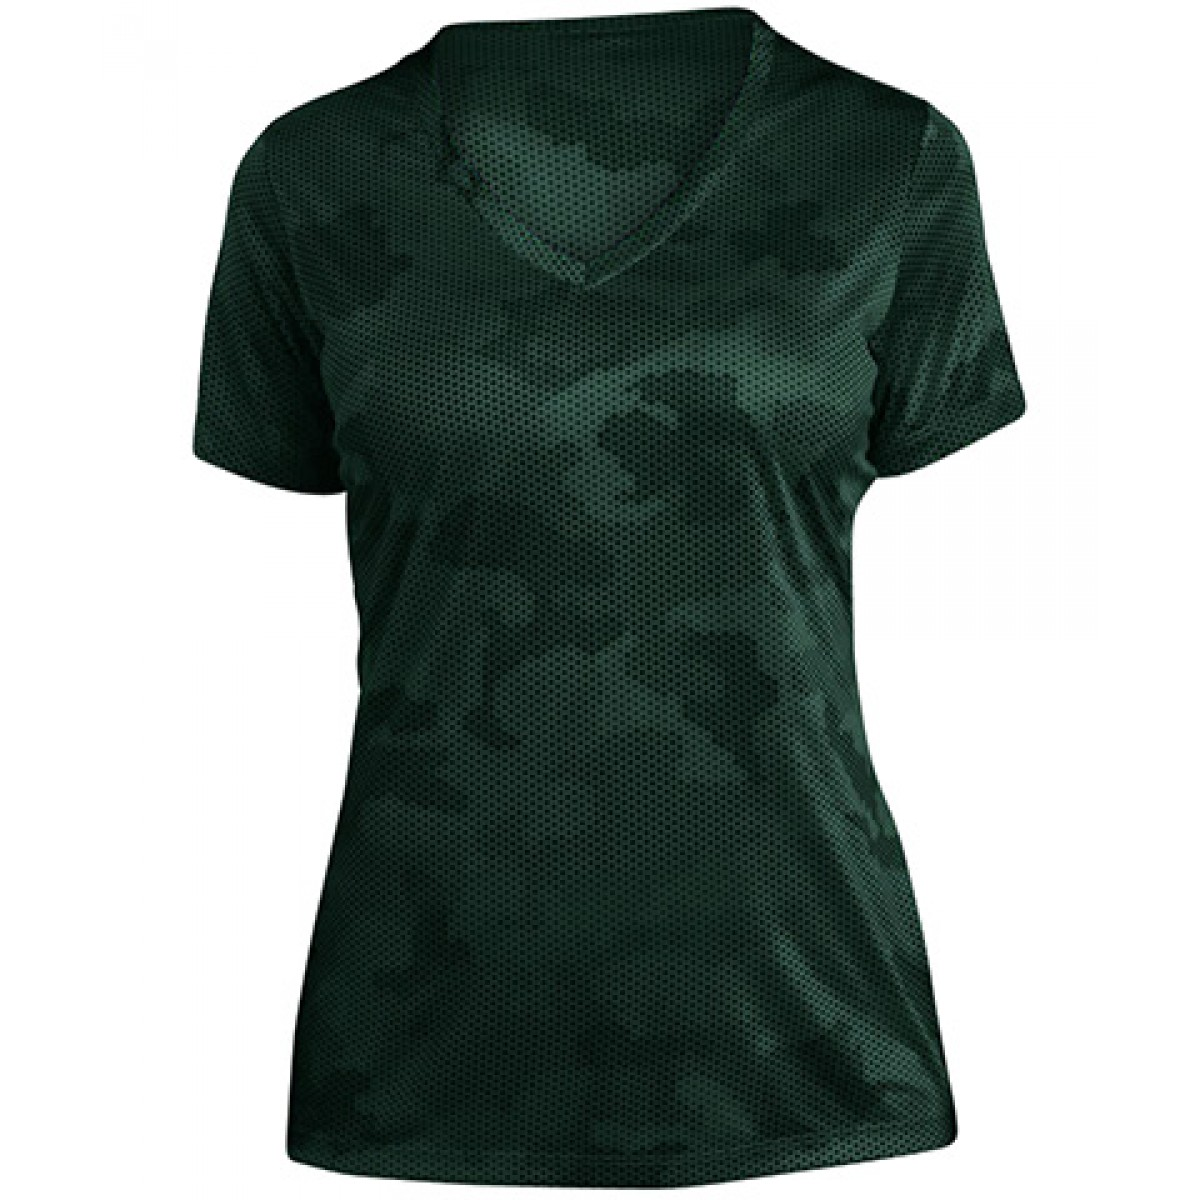 Ladies CamoHex V-Neck Tee-Green-3XL